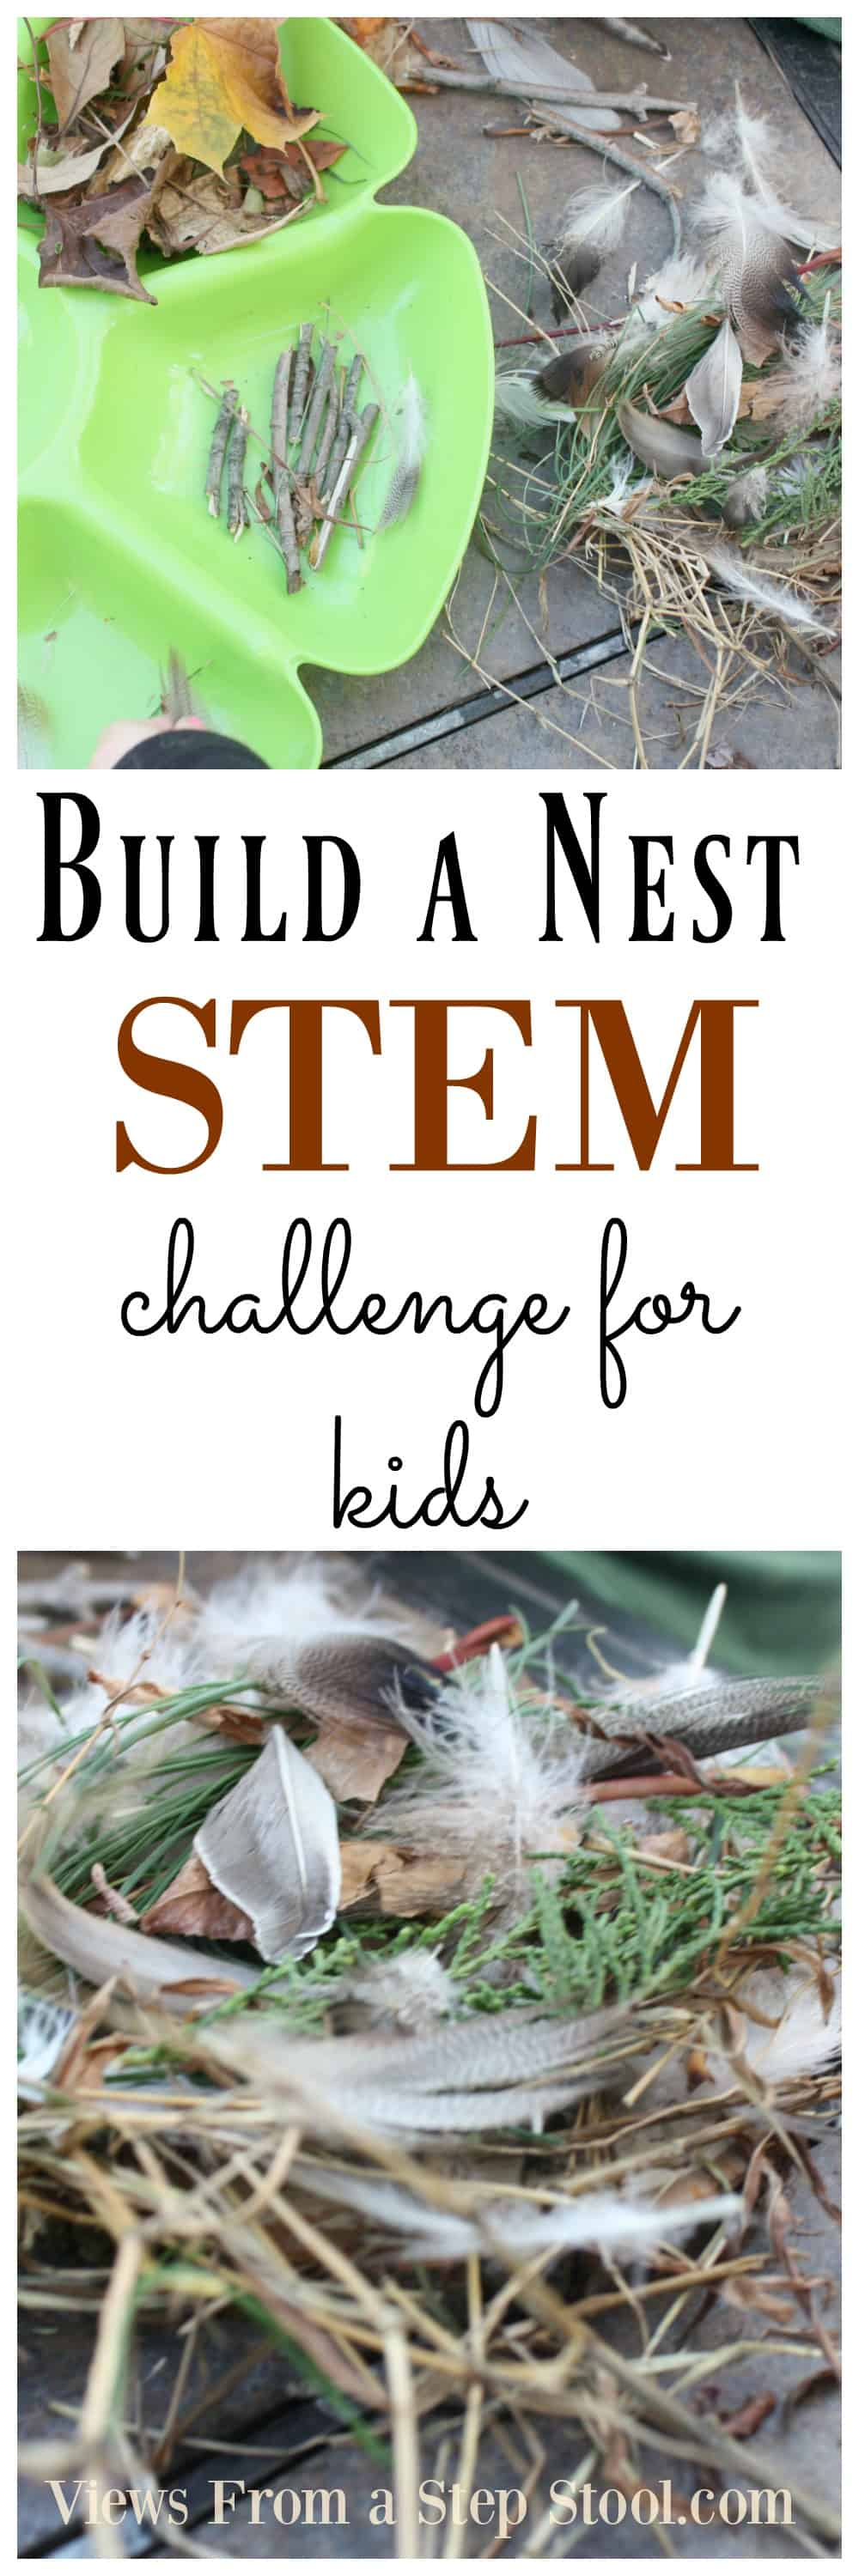 Can you build a nest? This STEM challenge for kids gets kids thinking creatively and applying imagination to science!